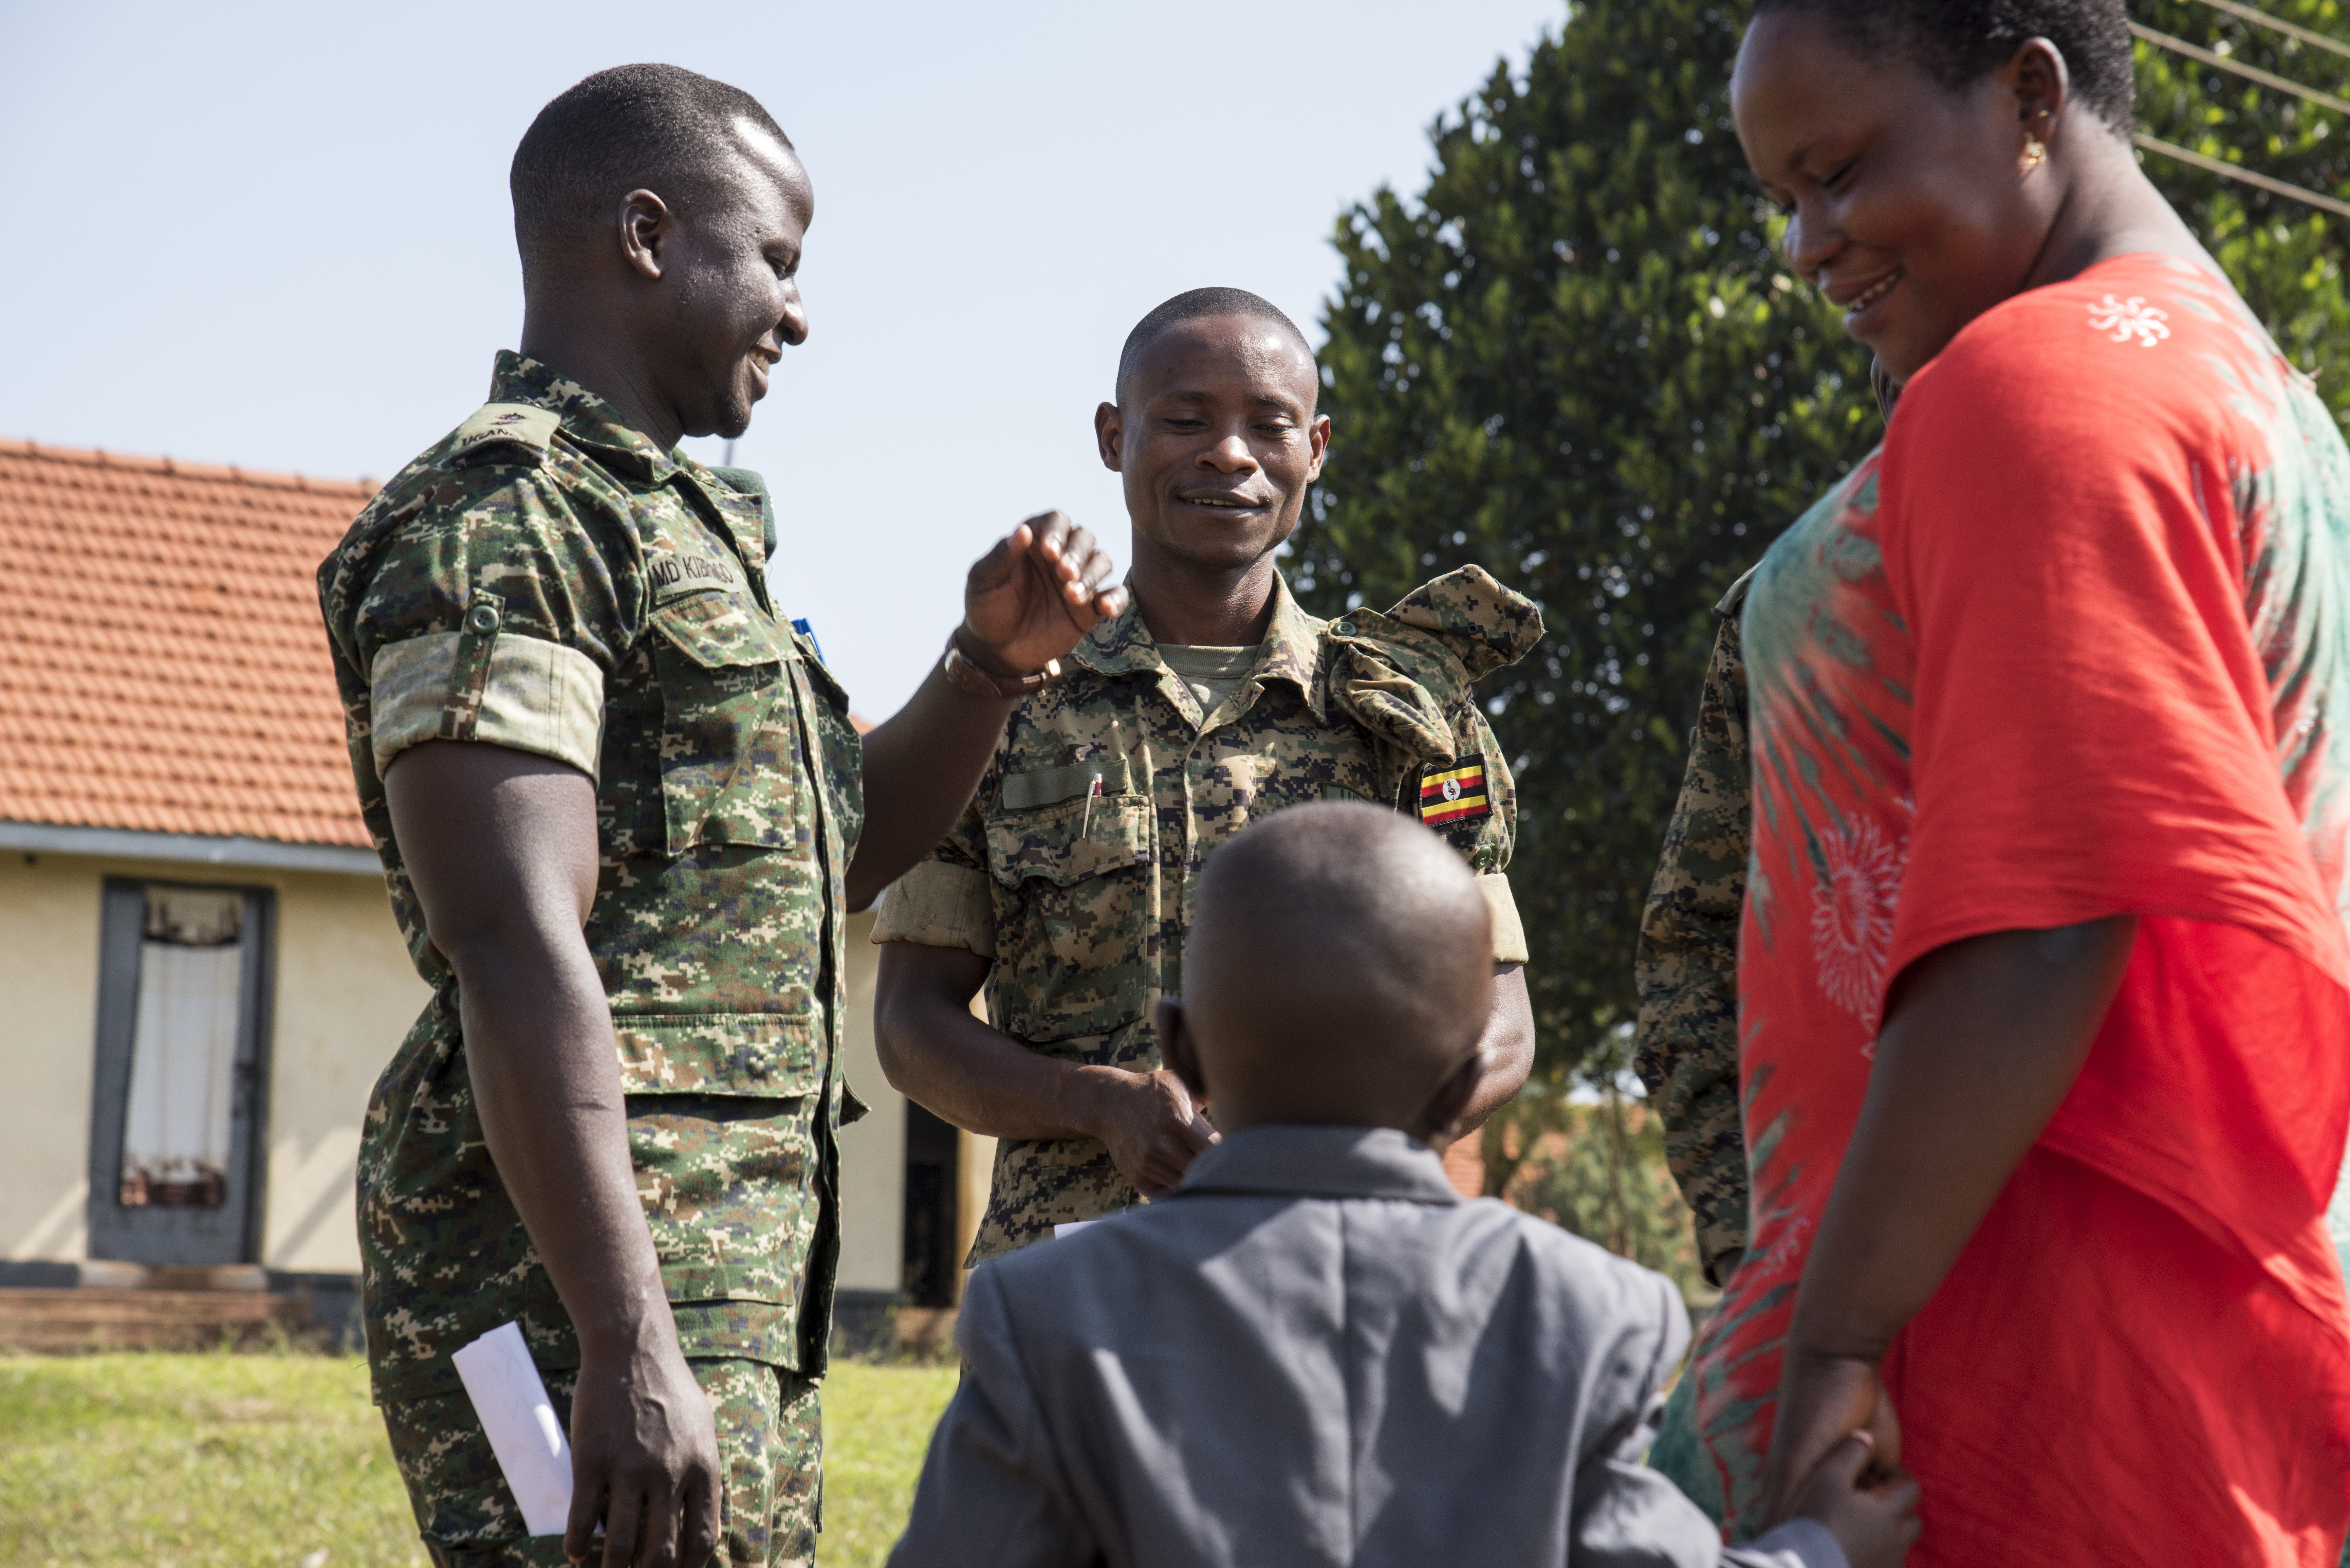 Members of the Uganda People's Defense Force (UPDF) speak to a mother and her child during an information operations field exercise hosted by personnel from Combined Joint Task Force-Horn of Africa, in Jinja, Uganda, recently. During the multi-week course on message planning and dissemination, attendees learned how to engage persons in face-to-face communications in order to disseminate messages on health and wellness, emergency services, and to counter violent extremist organization propaganda.  (U.S. Air Force photo by Staff Sgt. Nathan Maysonet)